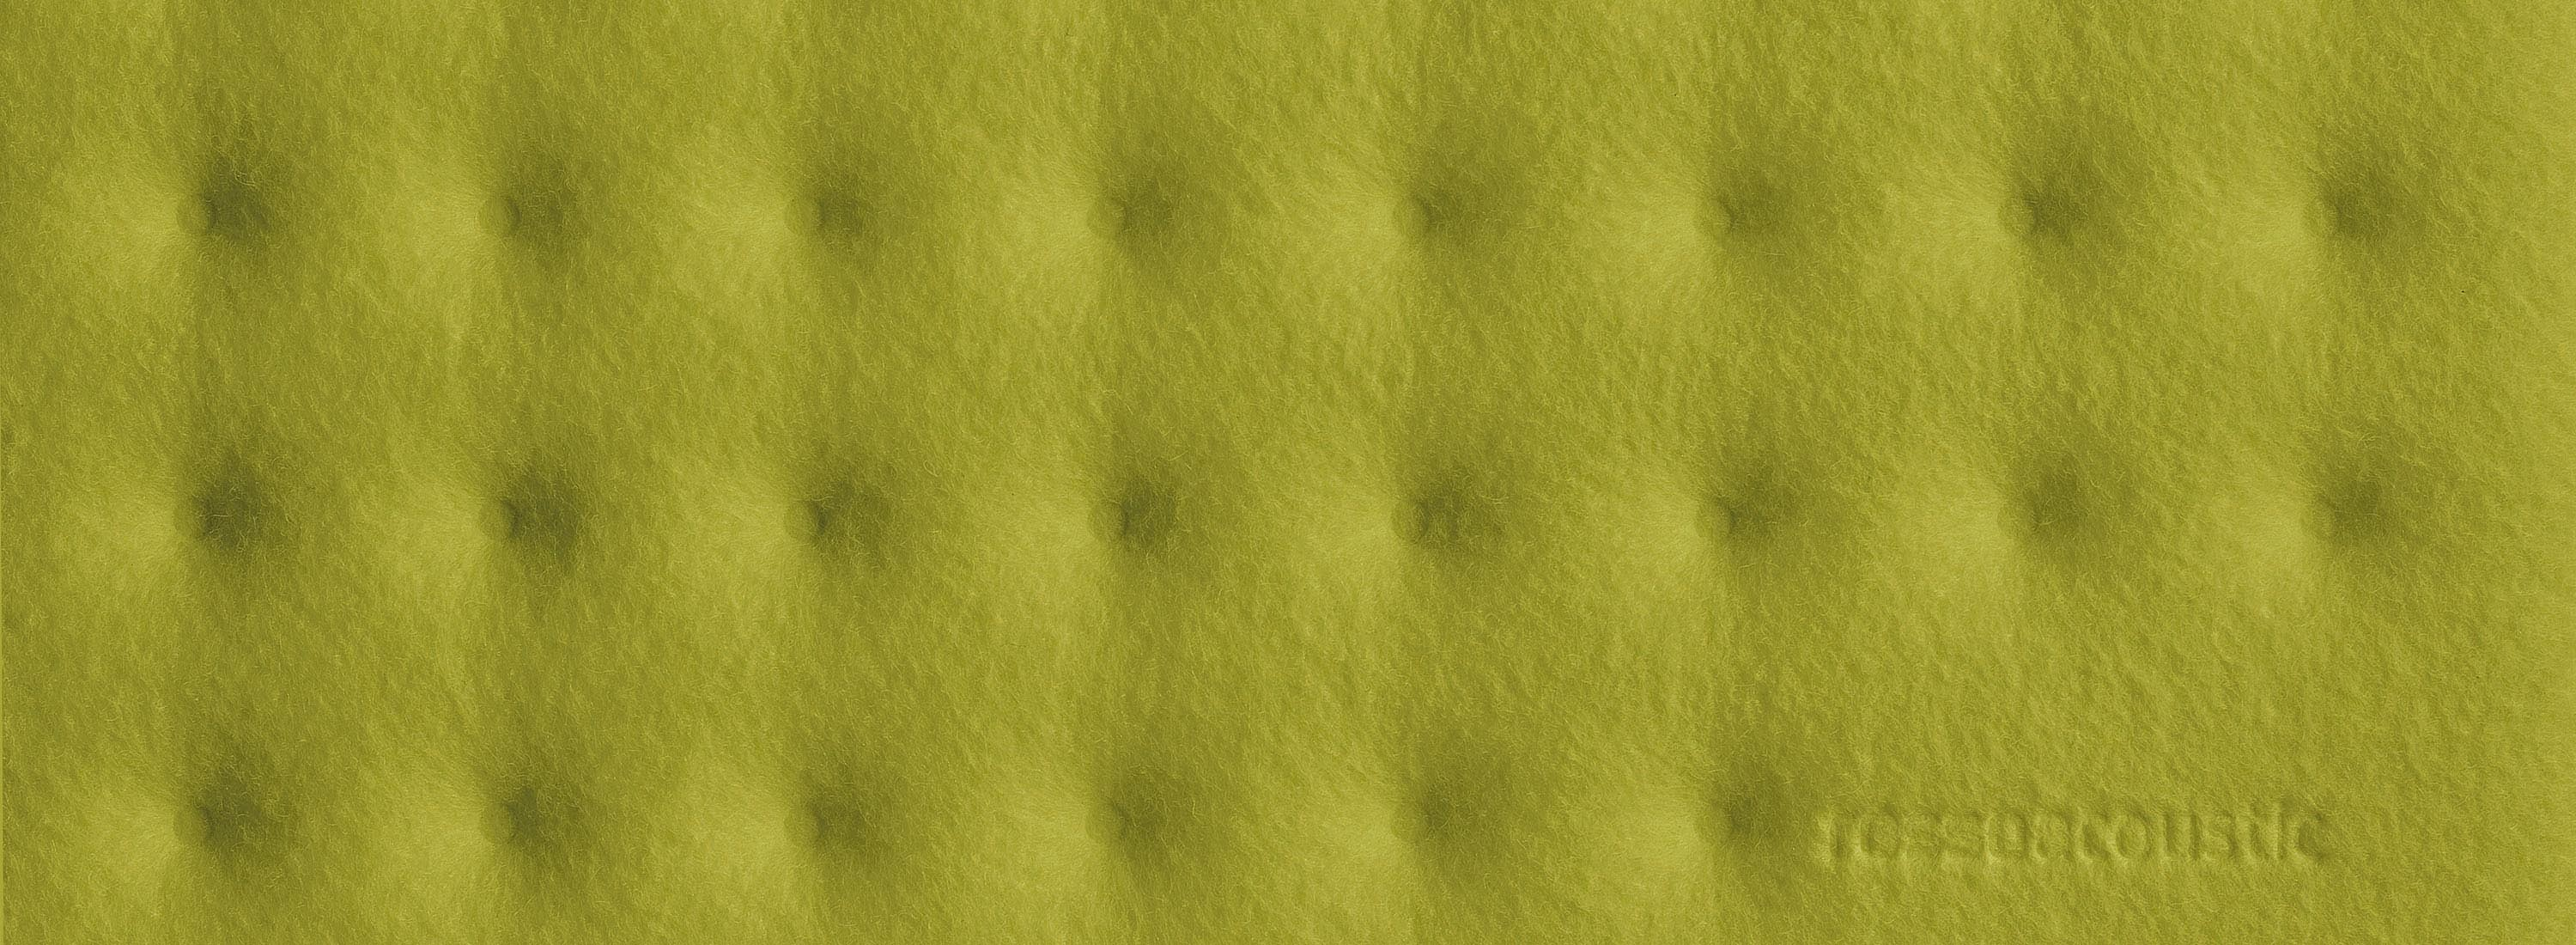 Rossoacoustic PAD R 900 Plus, Ø910 x 60 mm, soft moss